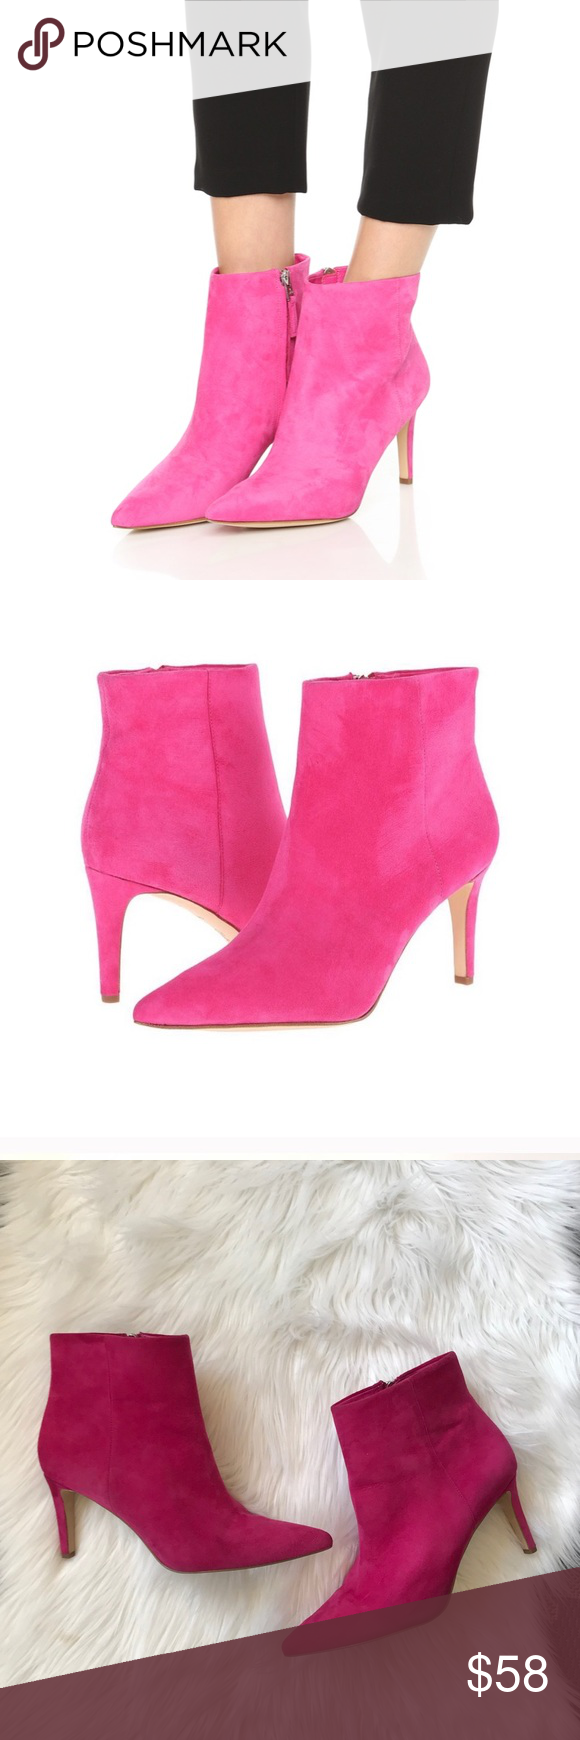 f2474ebab9a6 Sam Edelman Karen Suede Booties In Candy Pink Leather upper with man made  balance. Has